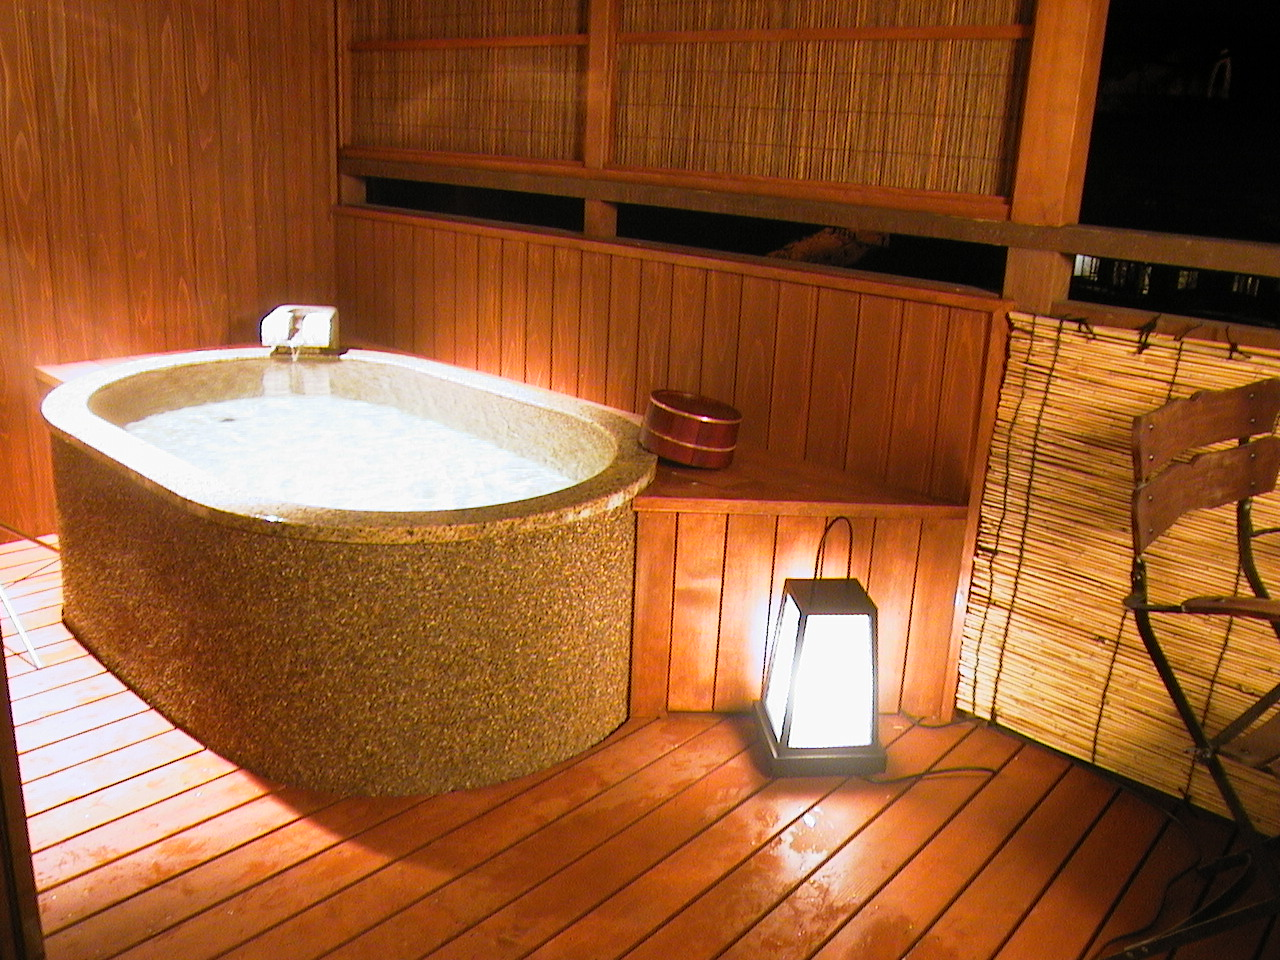 Ryokan that has Rooms with Private Onsen and Open-air Bath